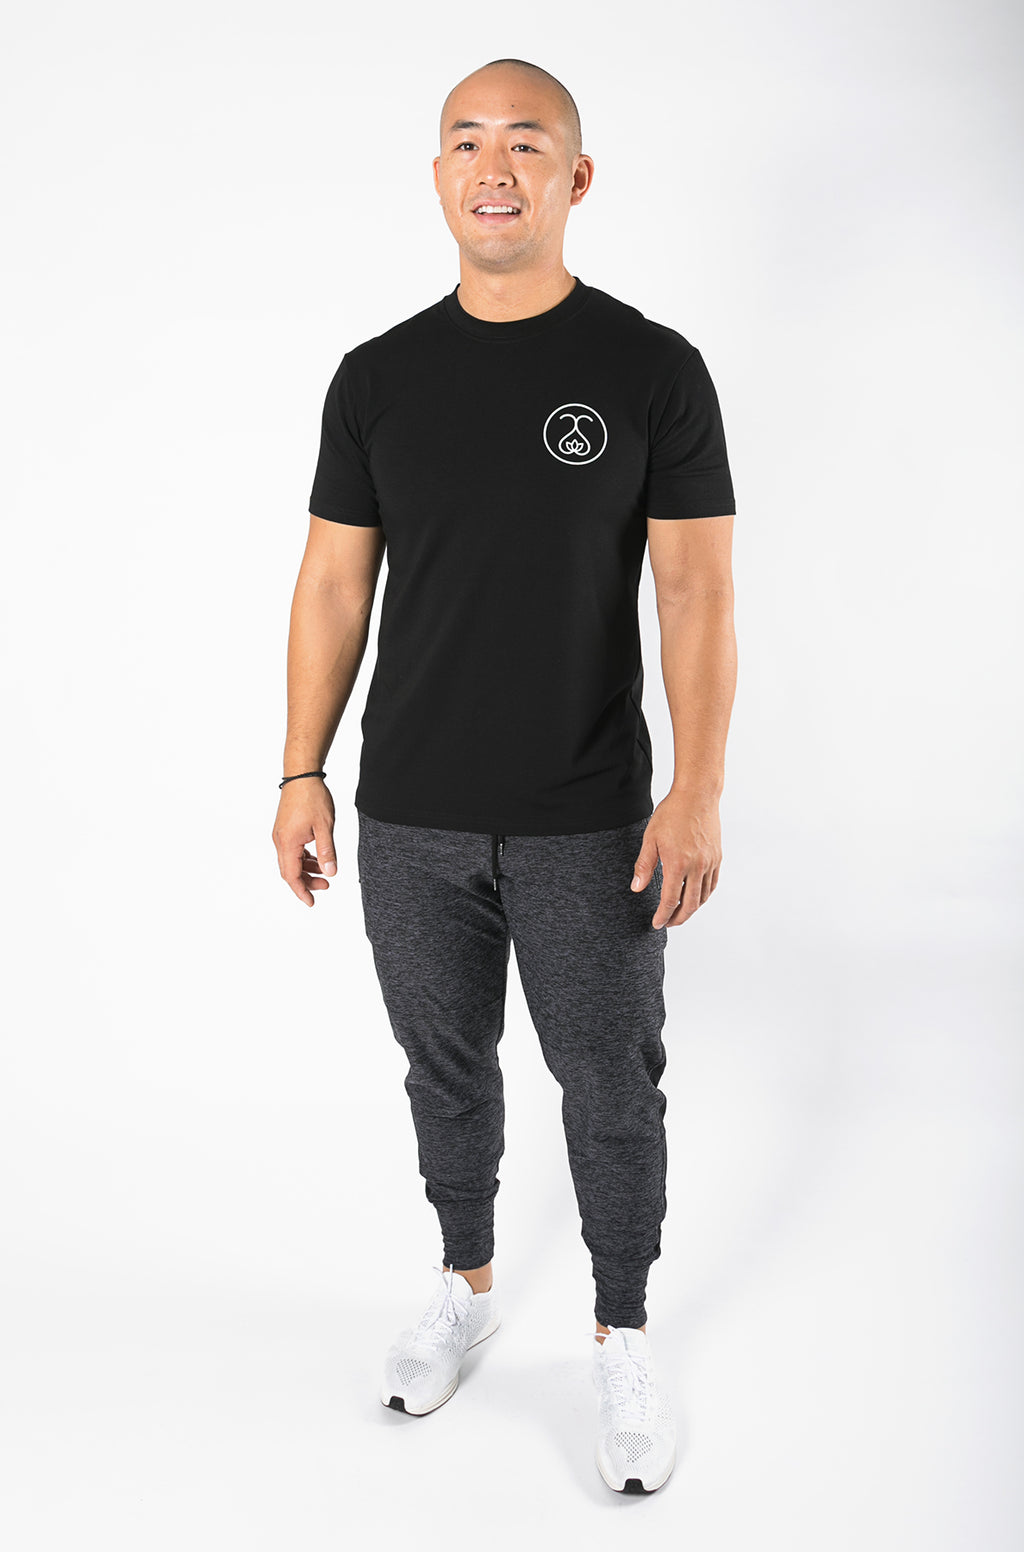 Sweat Society Cory Bamboo tee Ethical Activewear